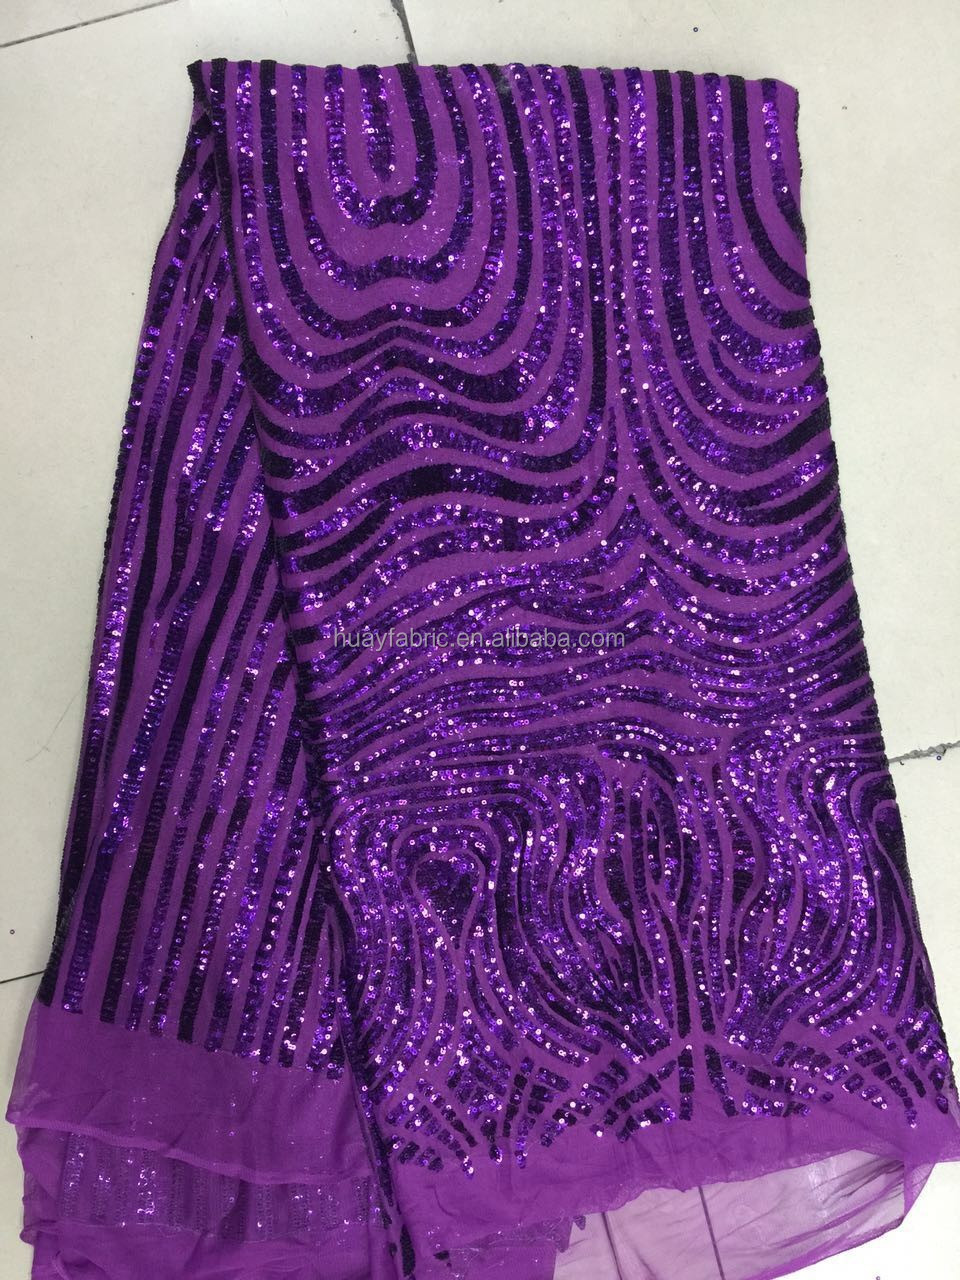 2015 New Purple African Lace fabrics french lace embroidery for evening top dress HY0215